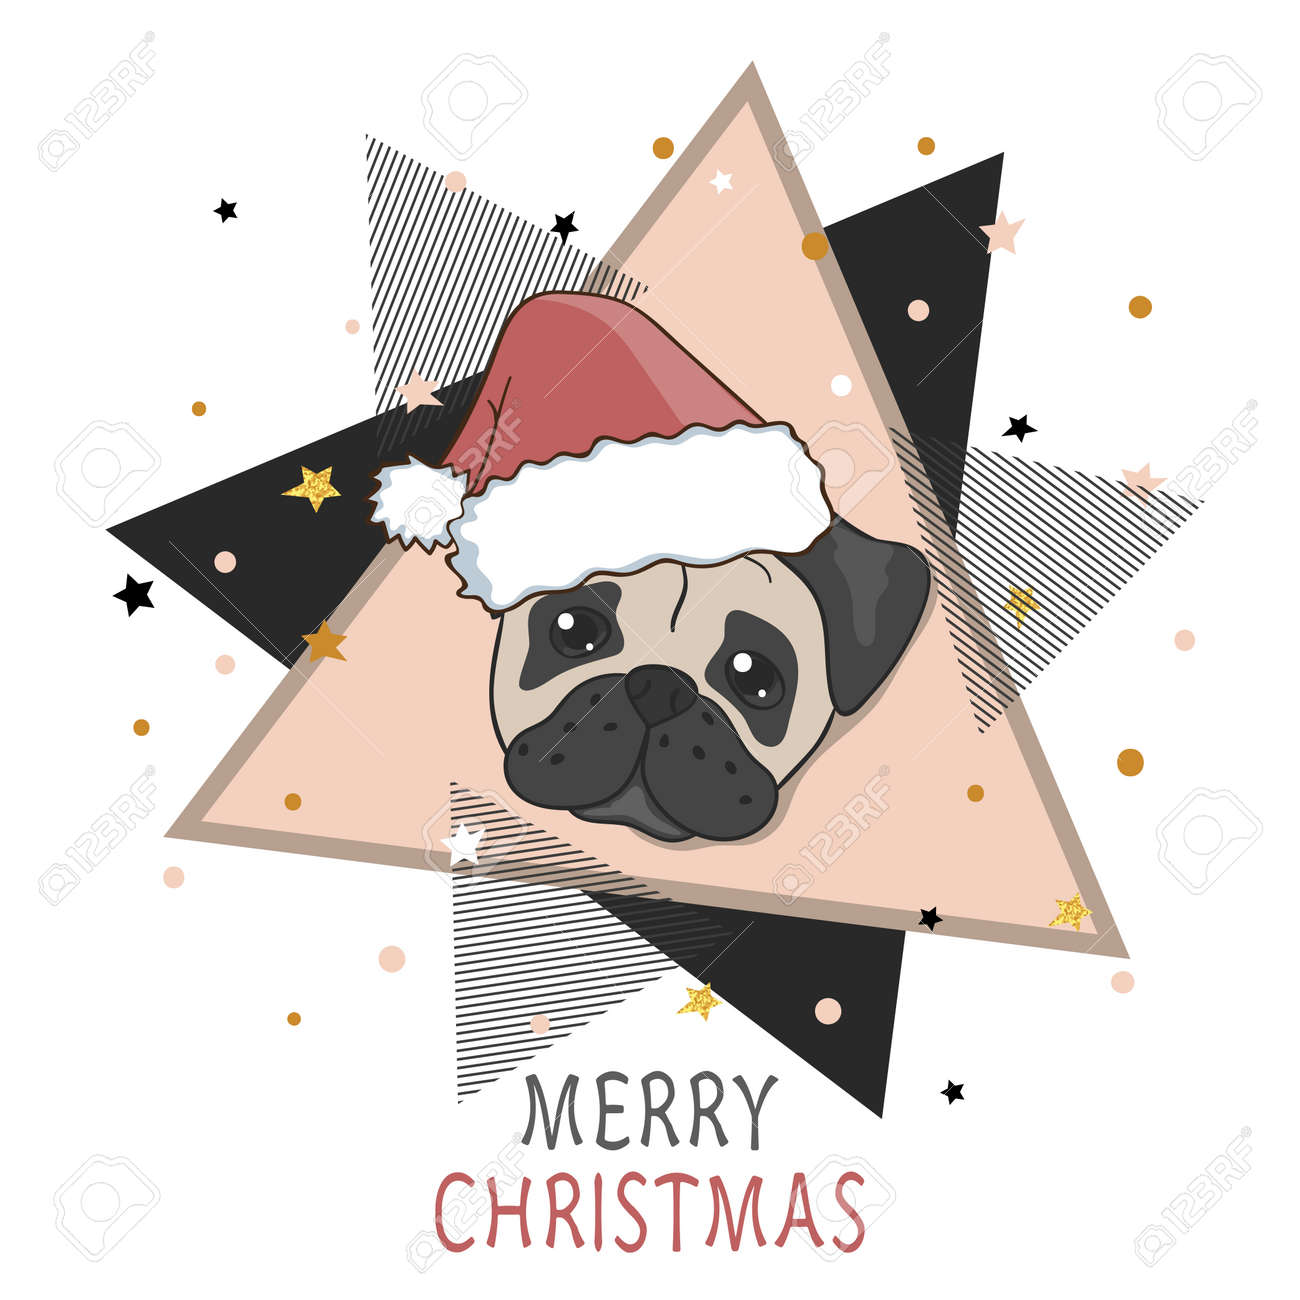 Pug Christmas Cards.Christmas Card With Cute Pug In Santa Hat Vector Holiday Illustration